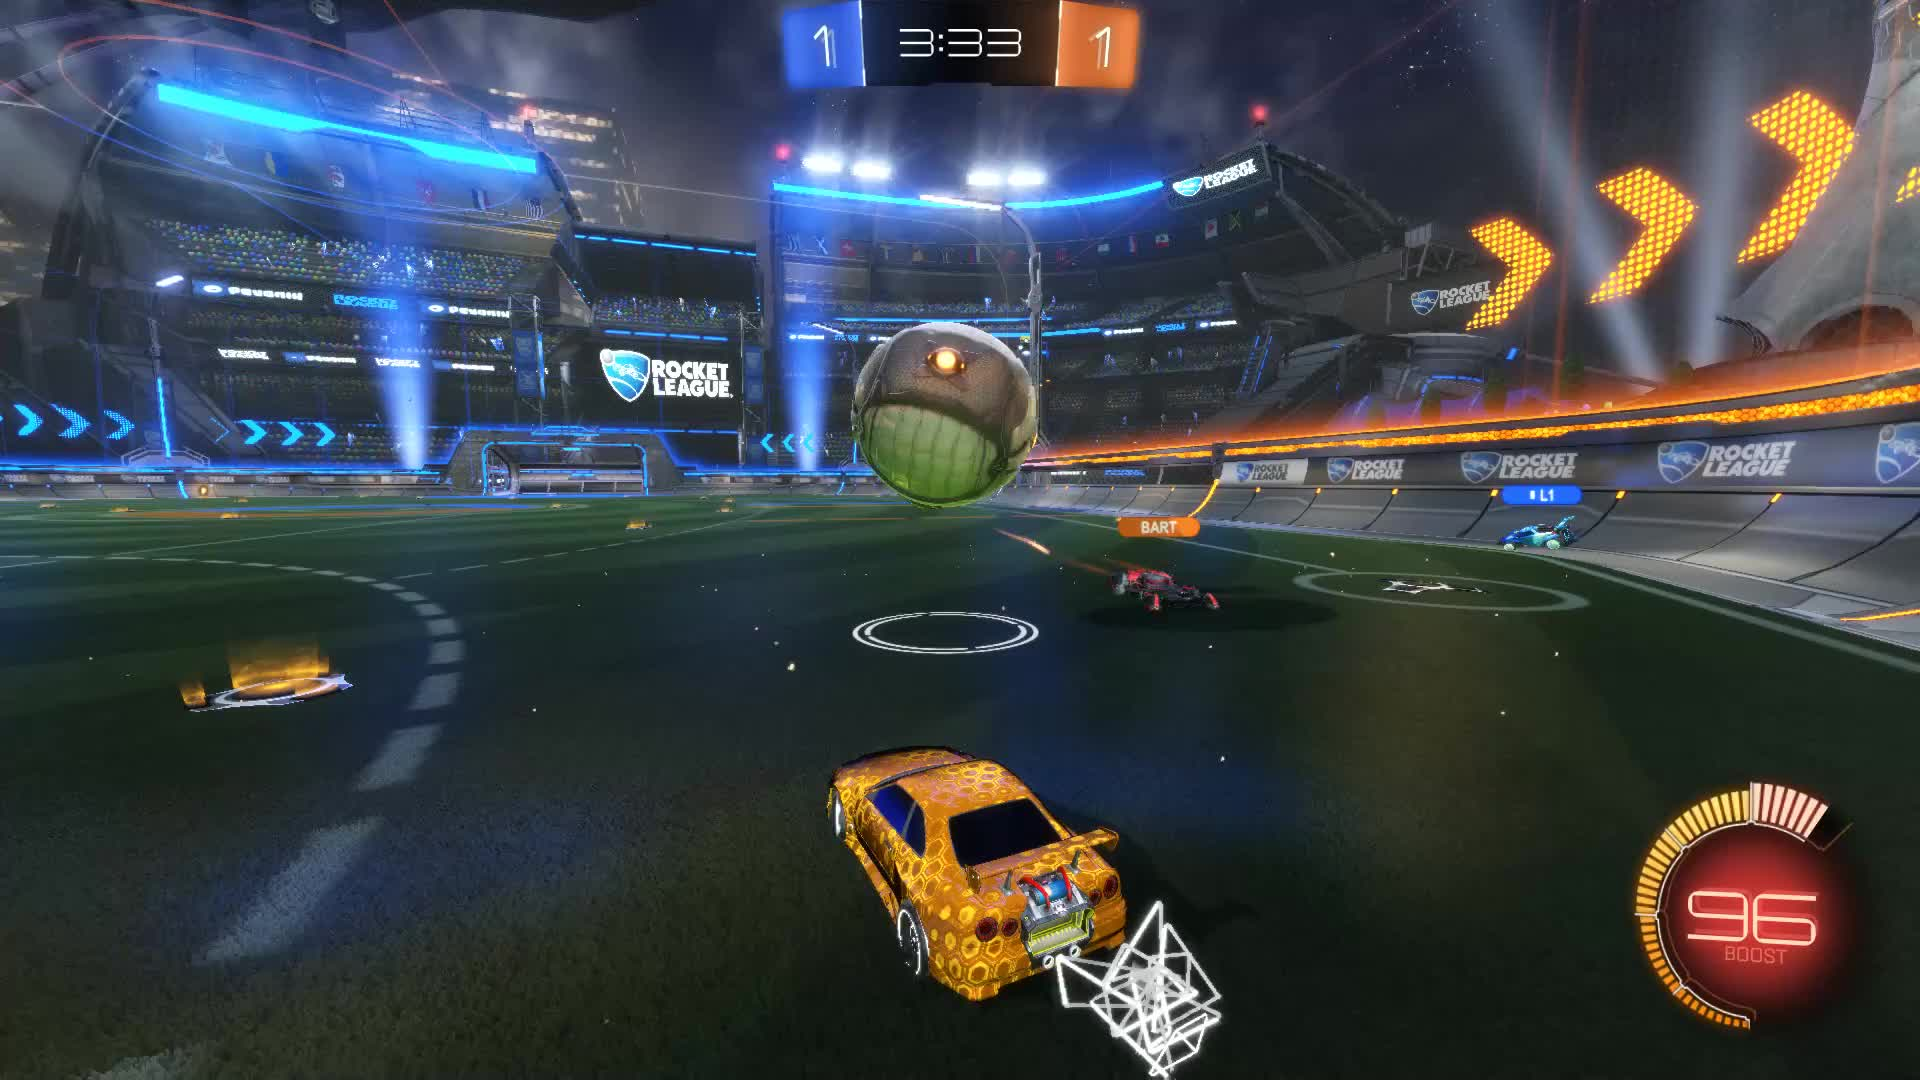 Arto, Gif Your Game, GifYourGame, Goal, Rocket League, RocketLeague, Goal 3: Arto GIFs